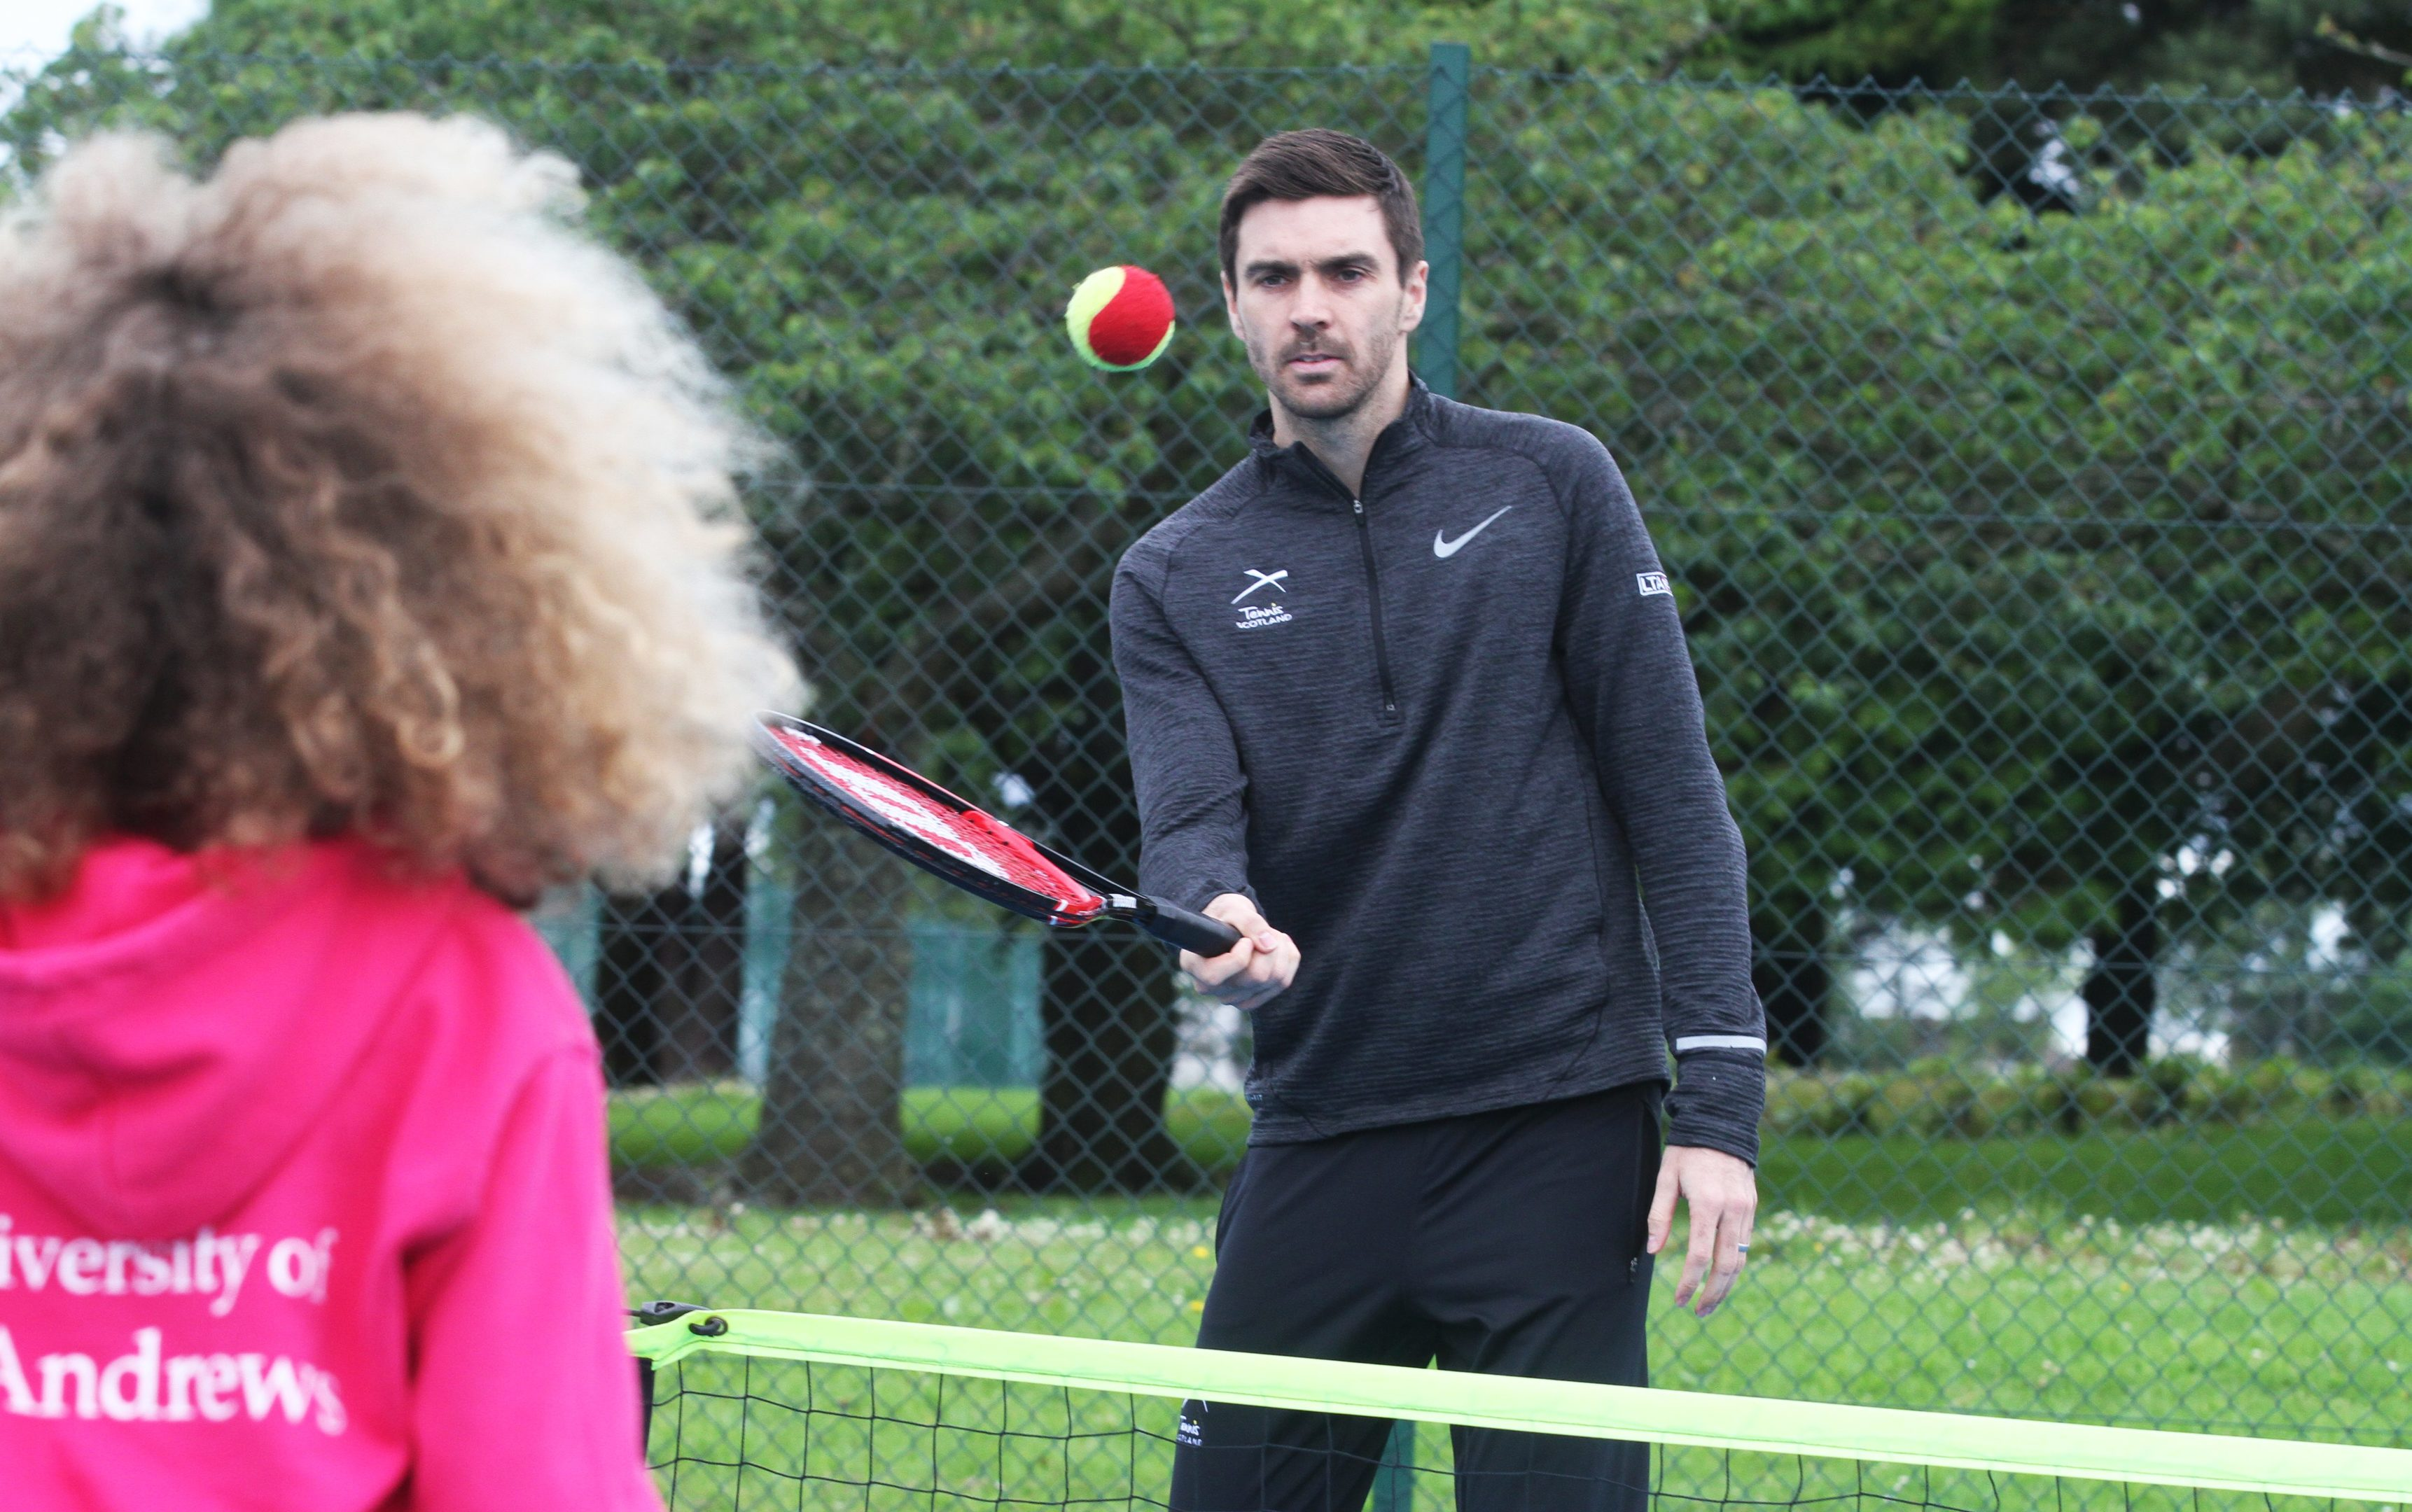 Colin Fleming gives some tennis tips at Dundee's Dawson Park.